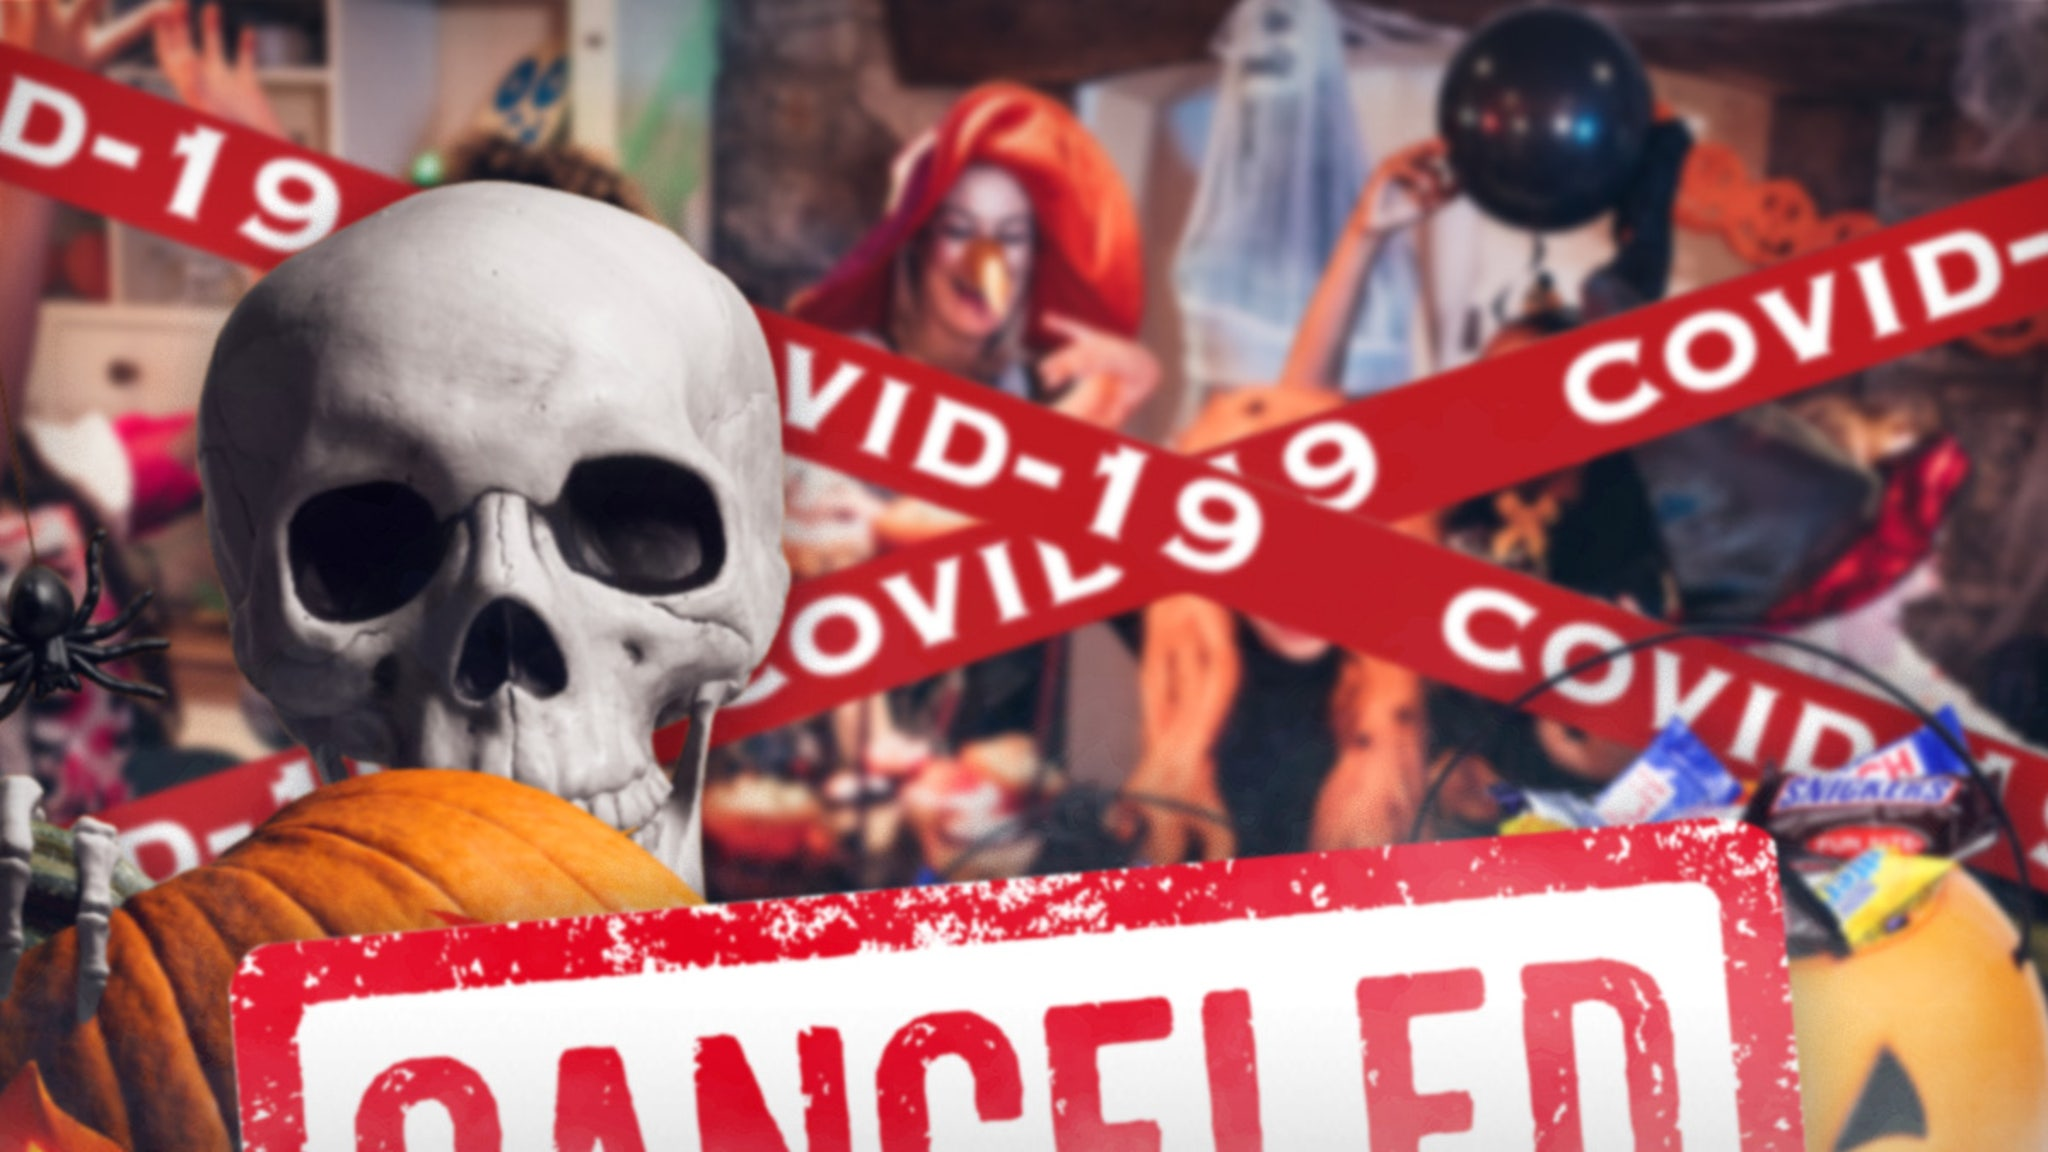 Halloween Looking Real COVID-Canceled with Candy, Costume Sales Down